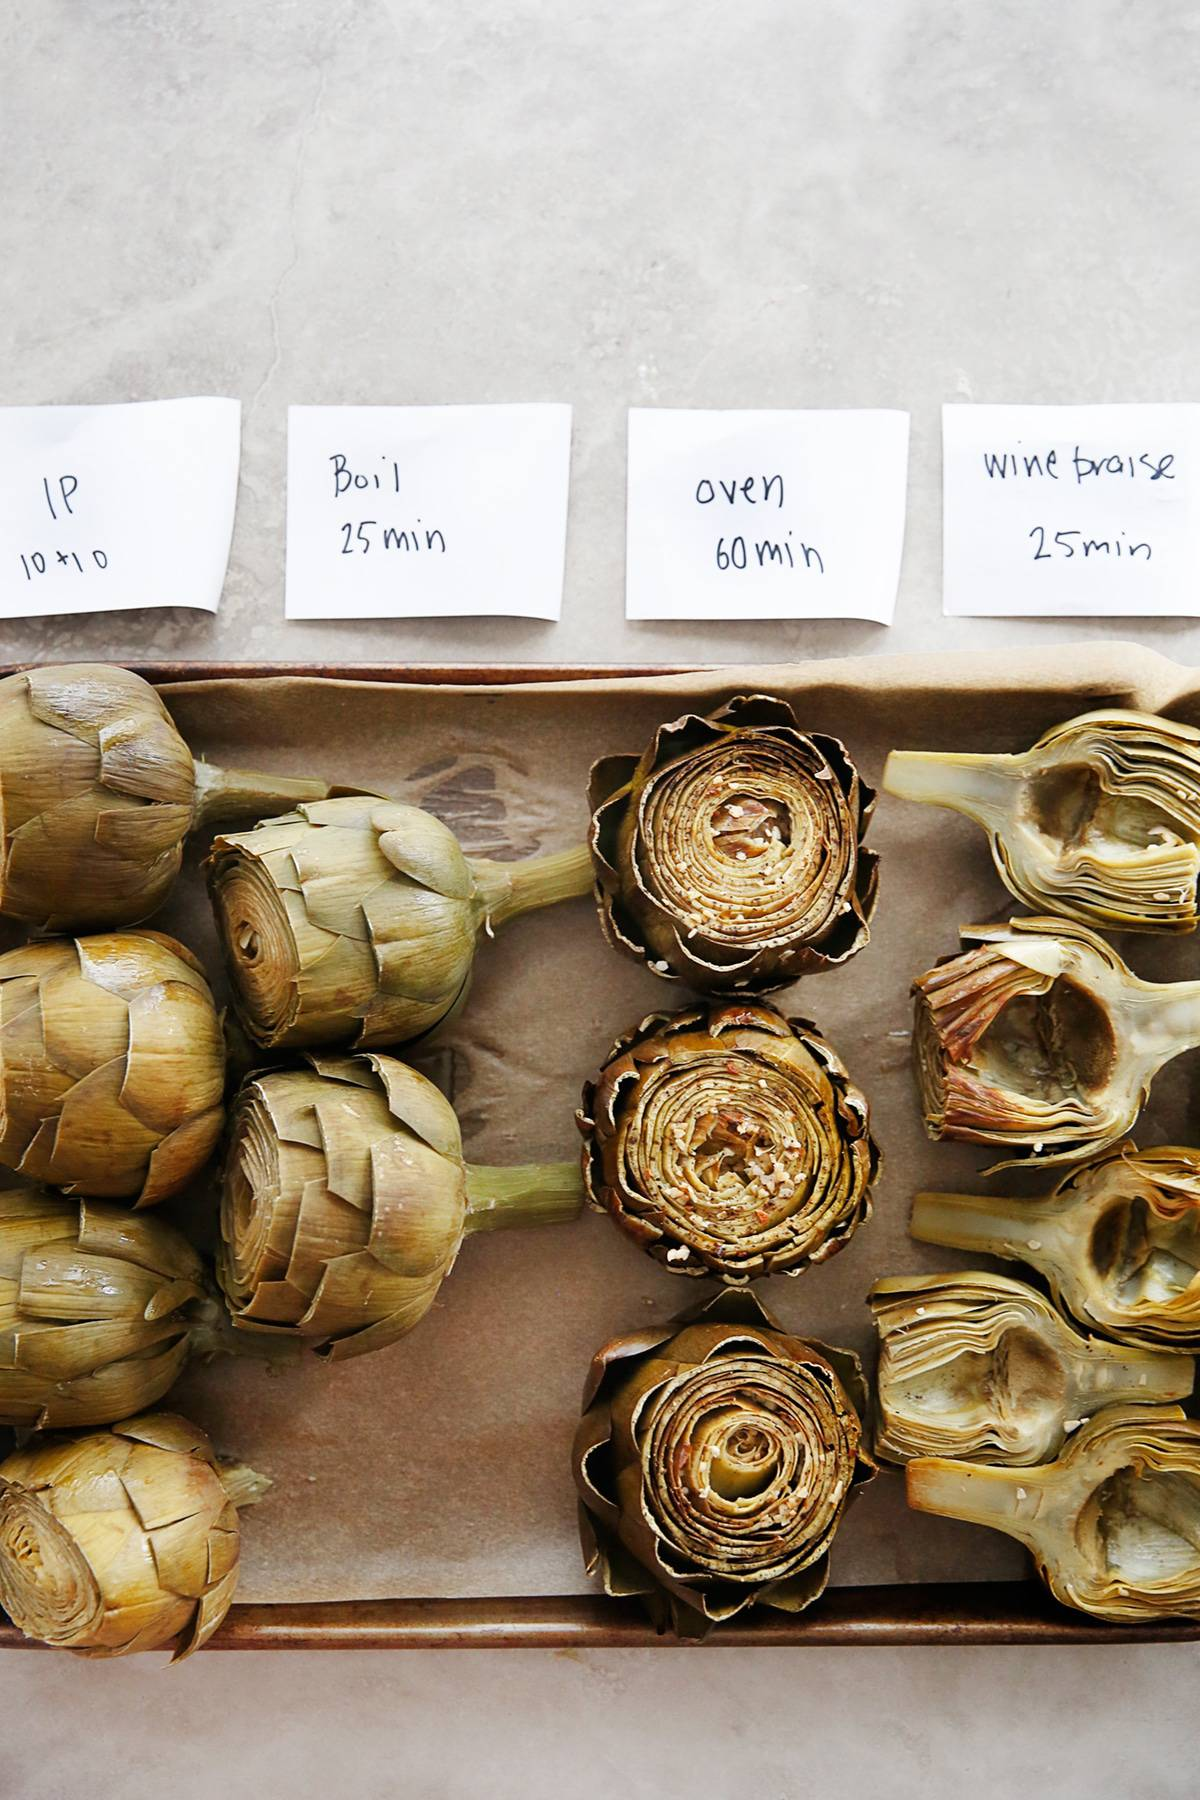 How to cook artichokes demonstration